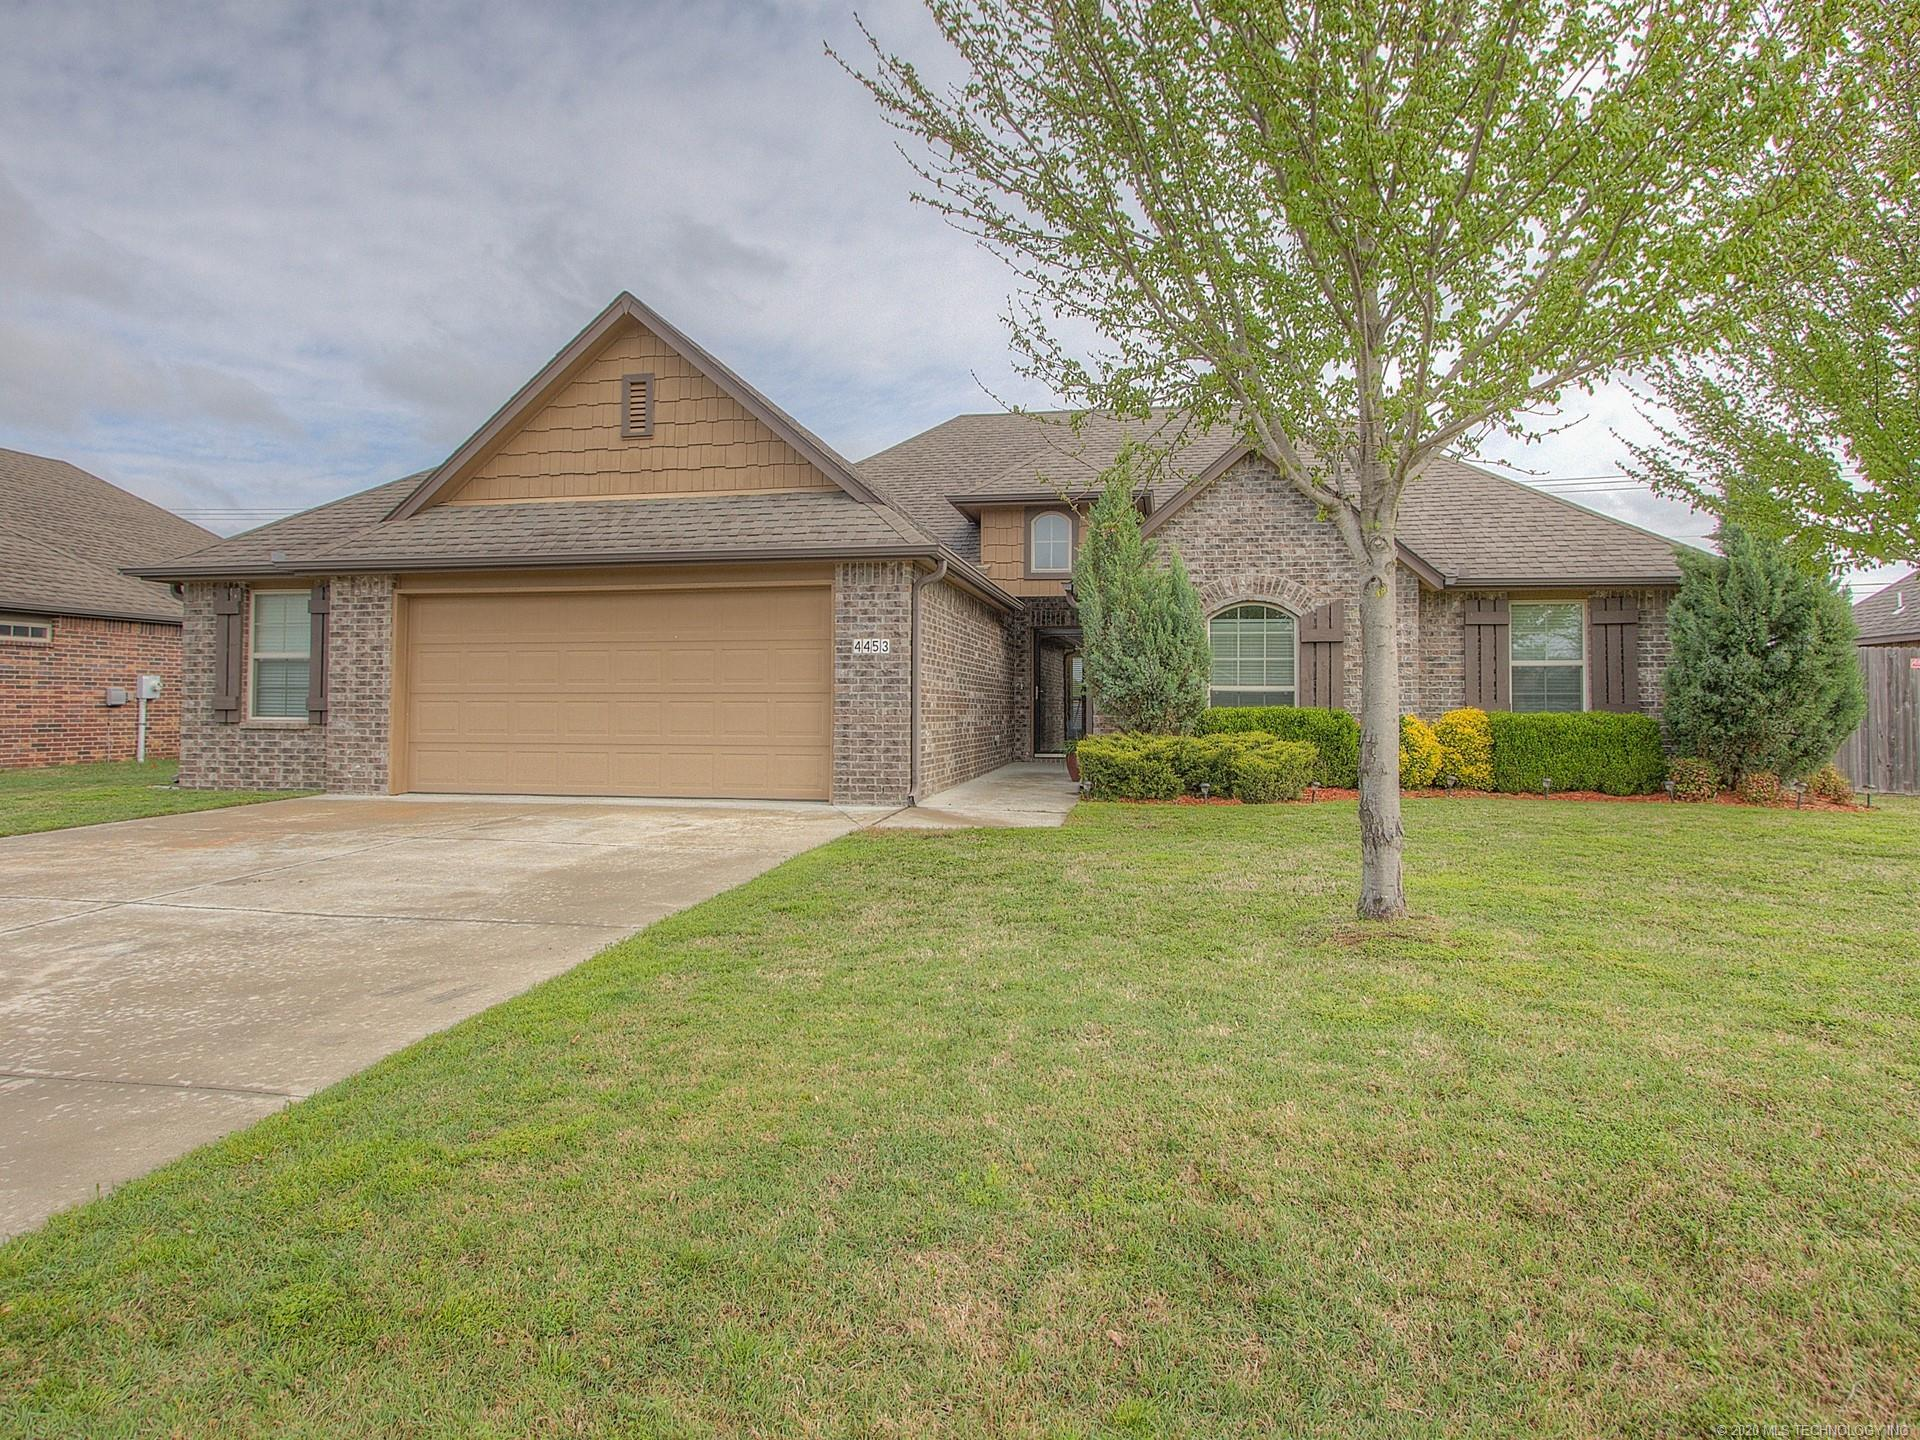 4453 Walnut Street , Kiefer, OK 74041